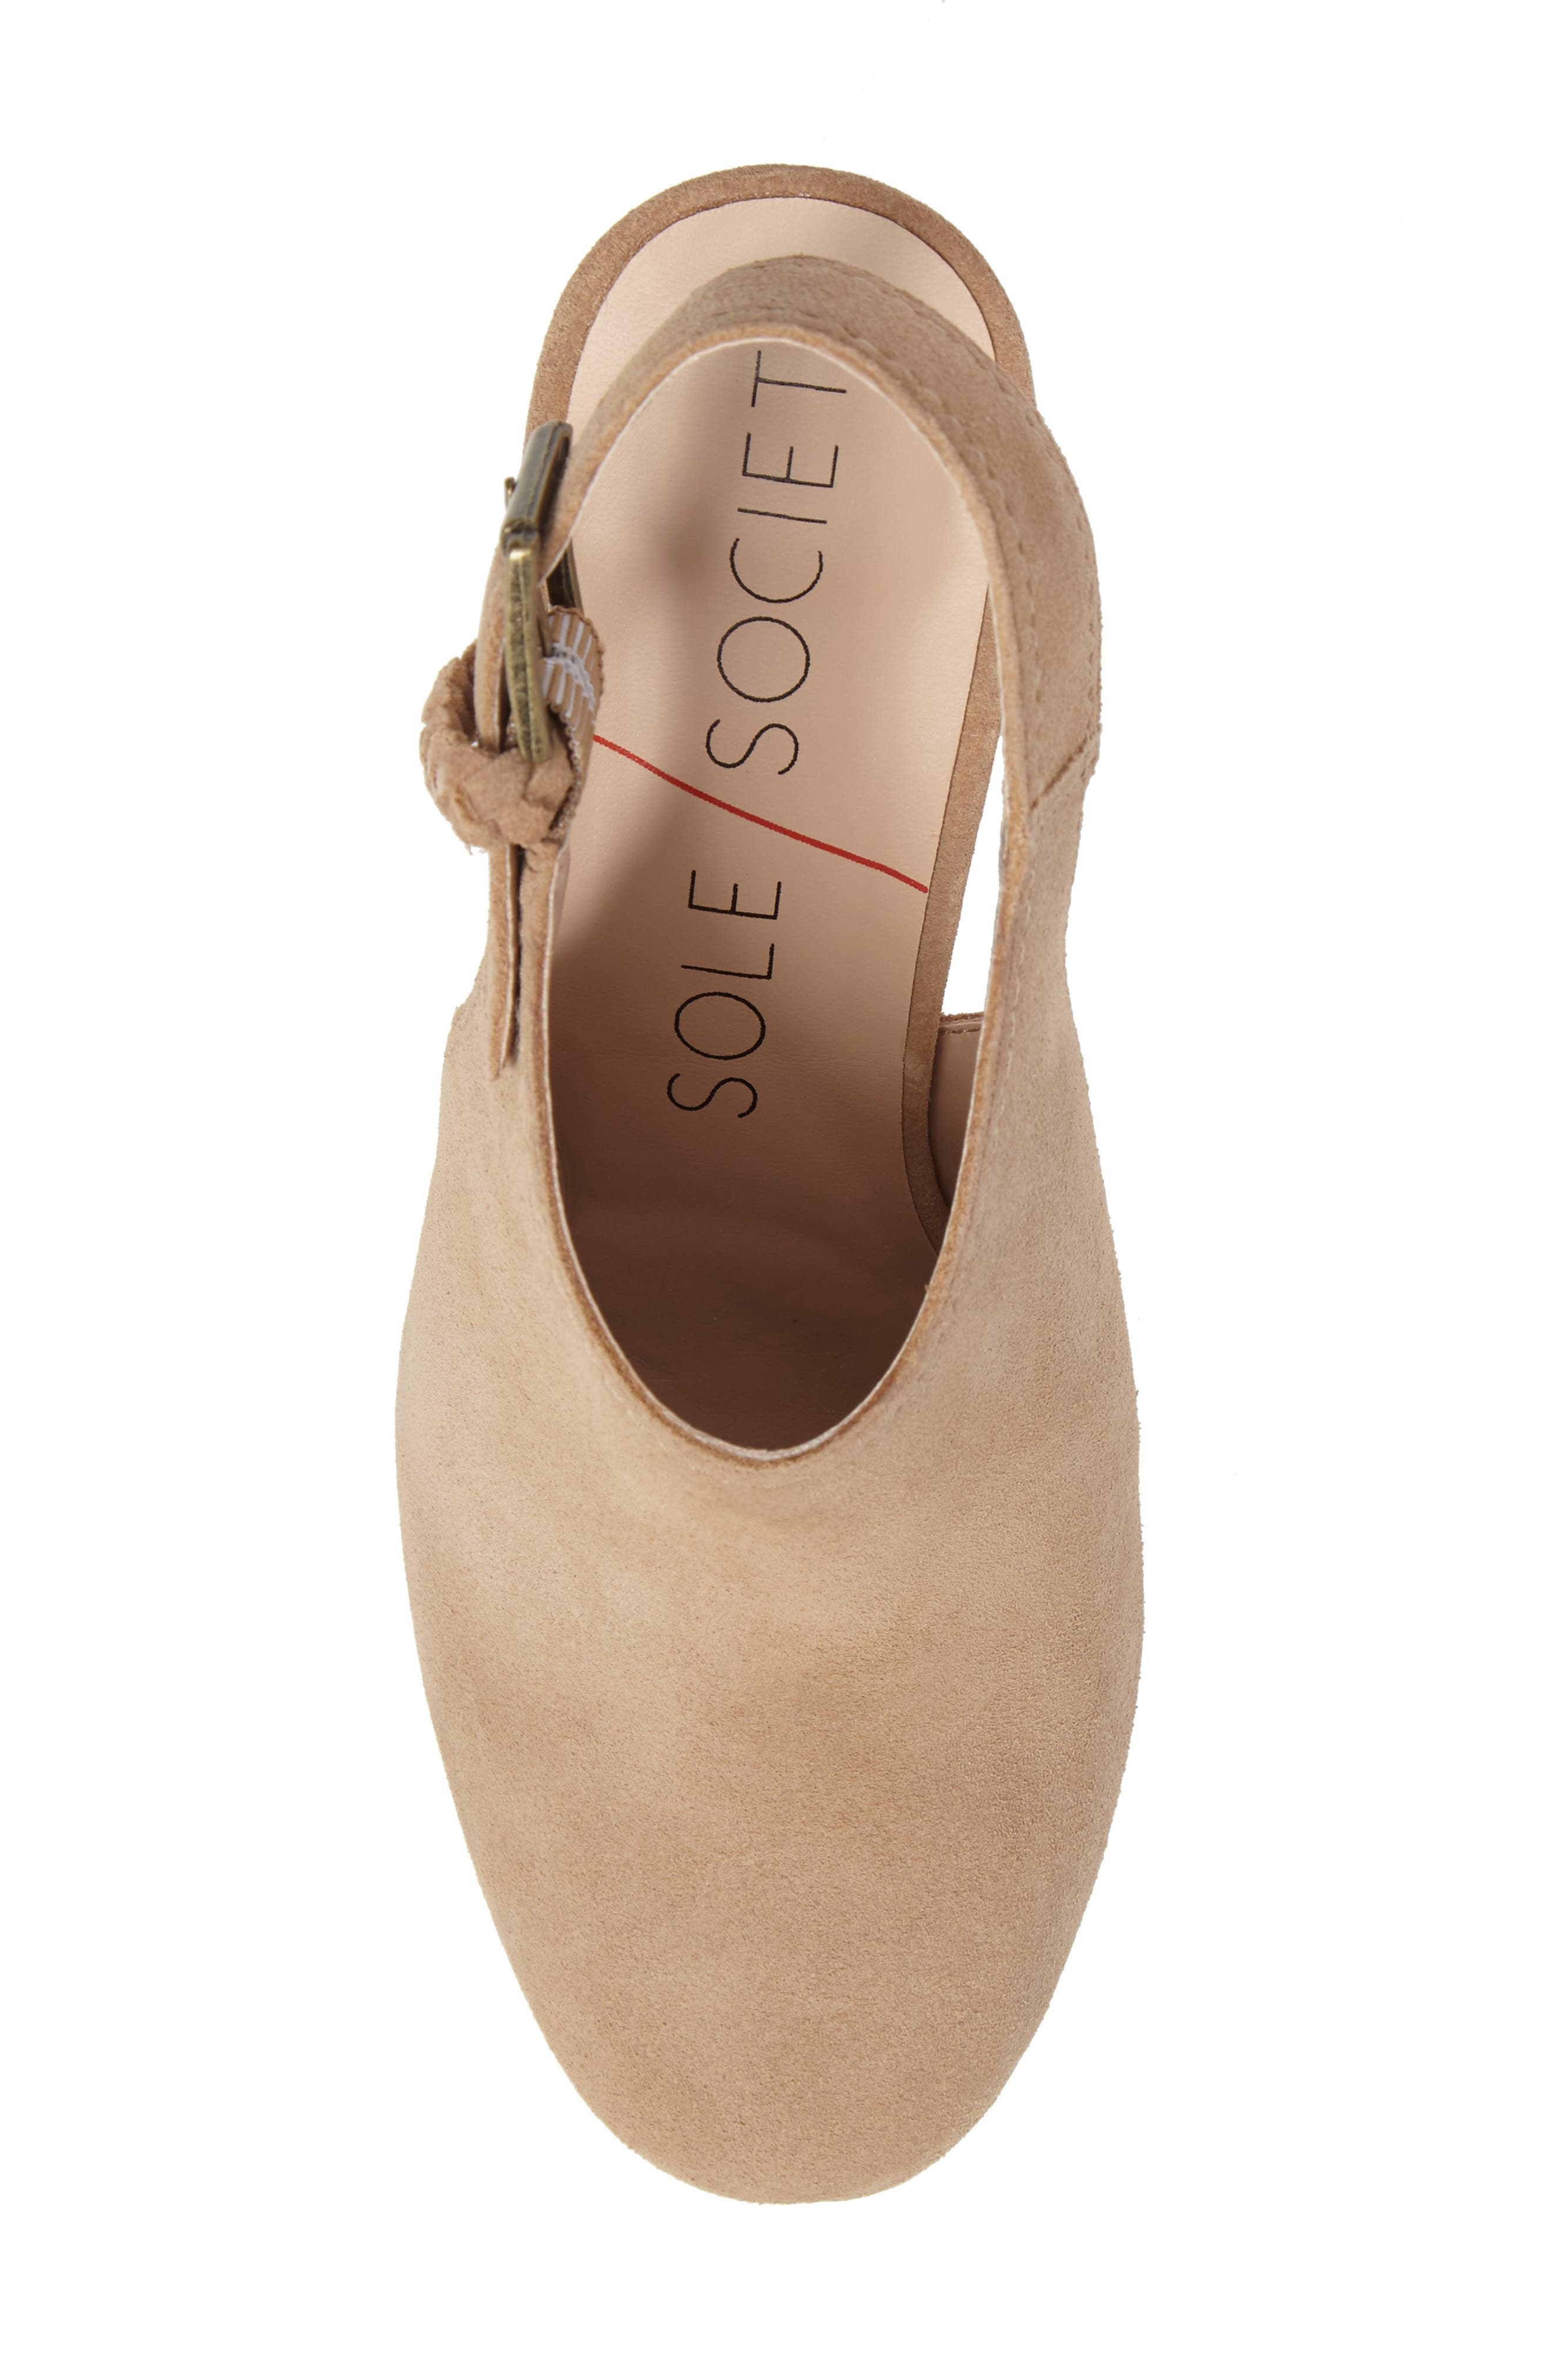 Apollo Slingback Bootie,                             Alternate thumbnail 5, color,                             230